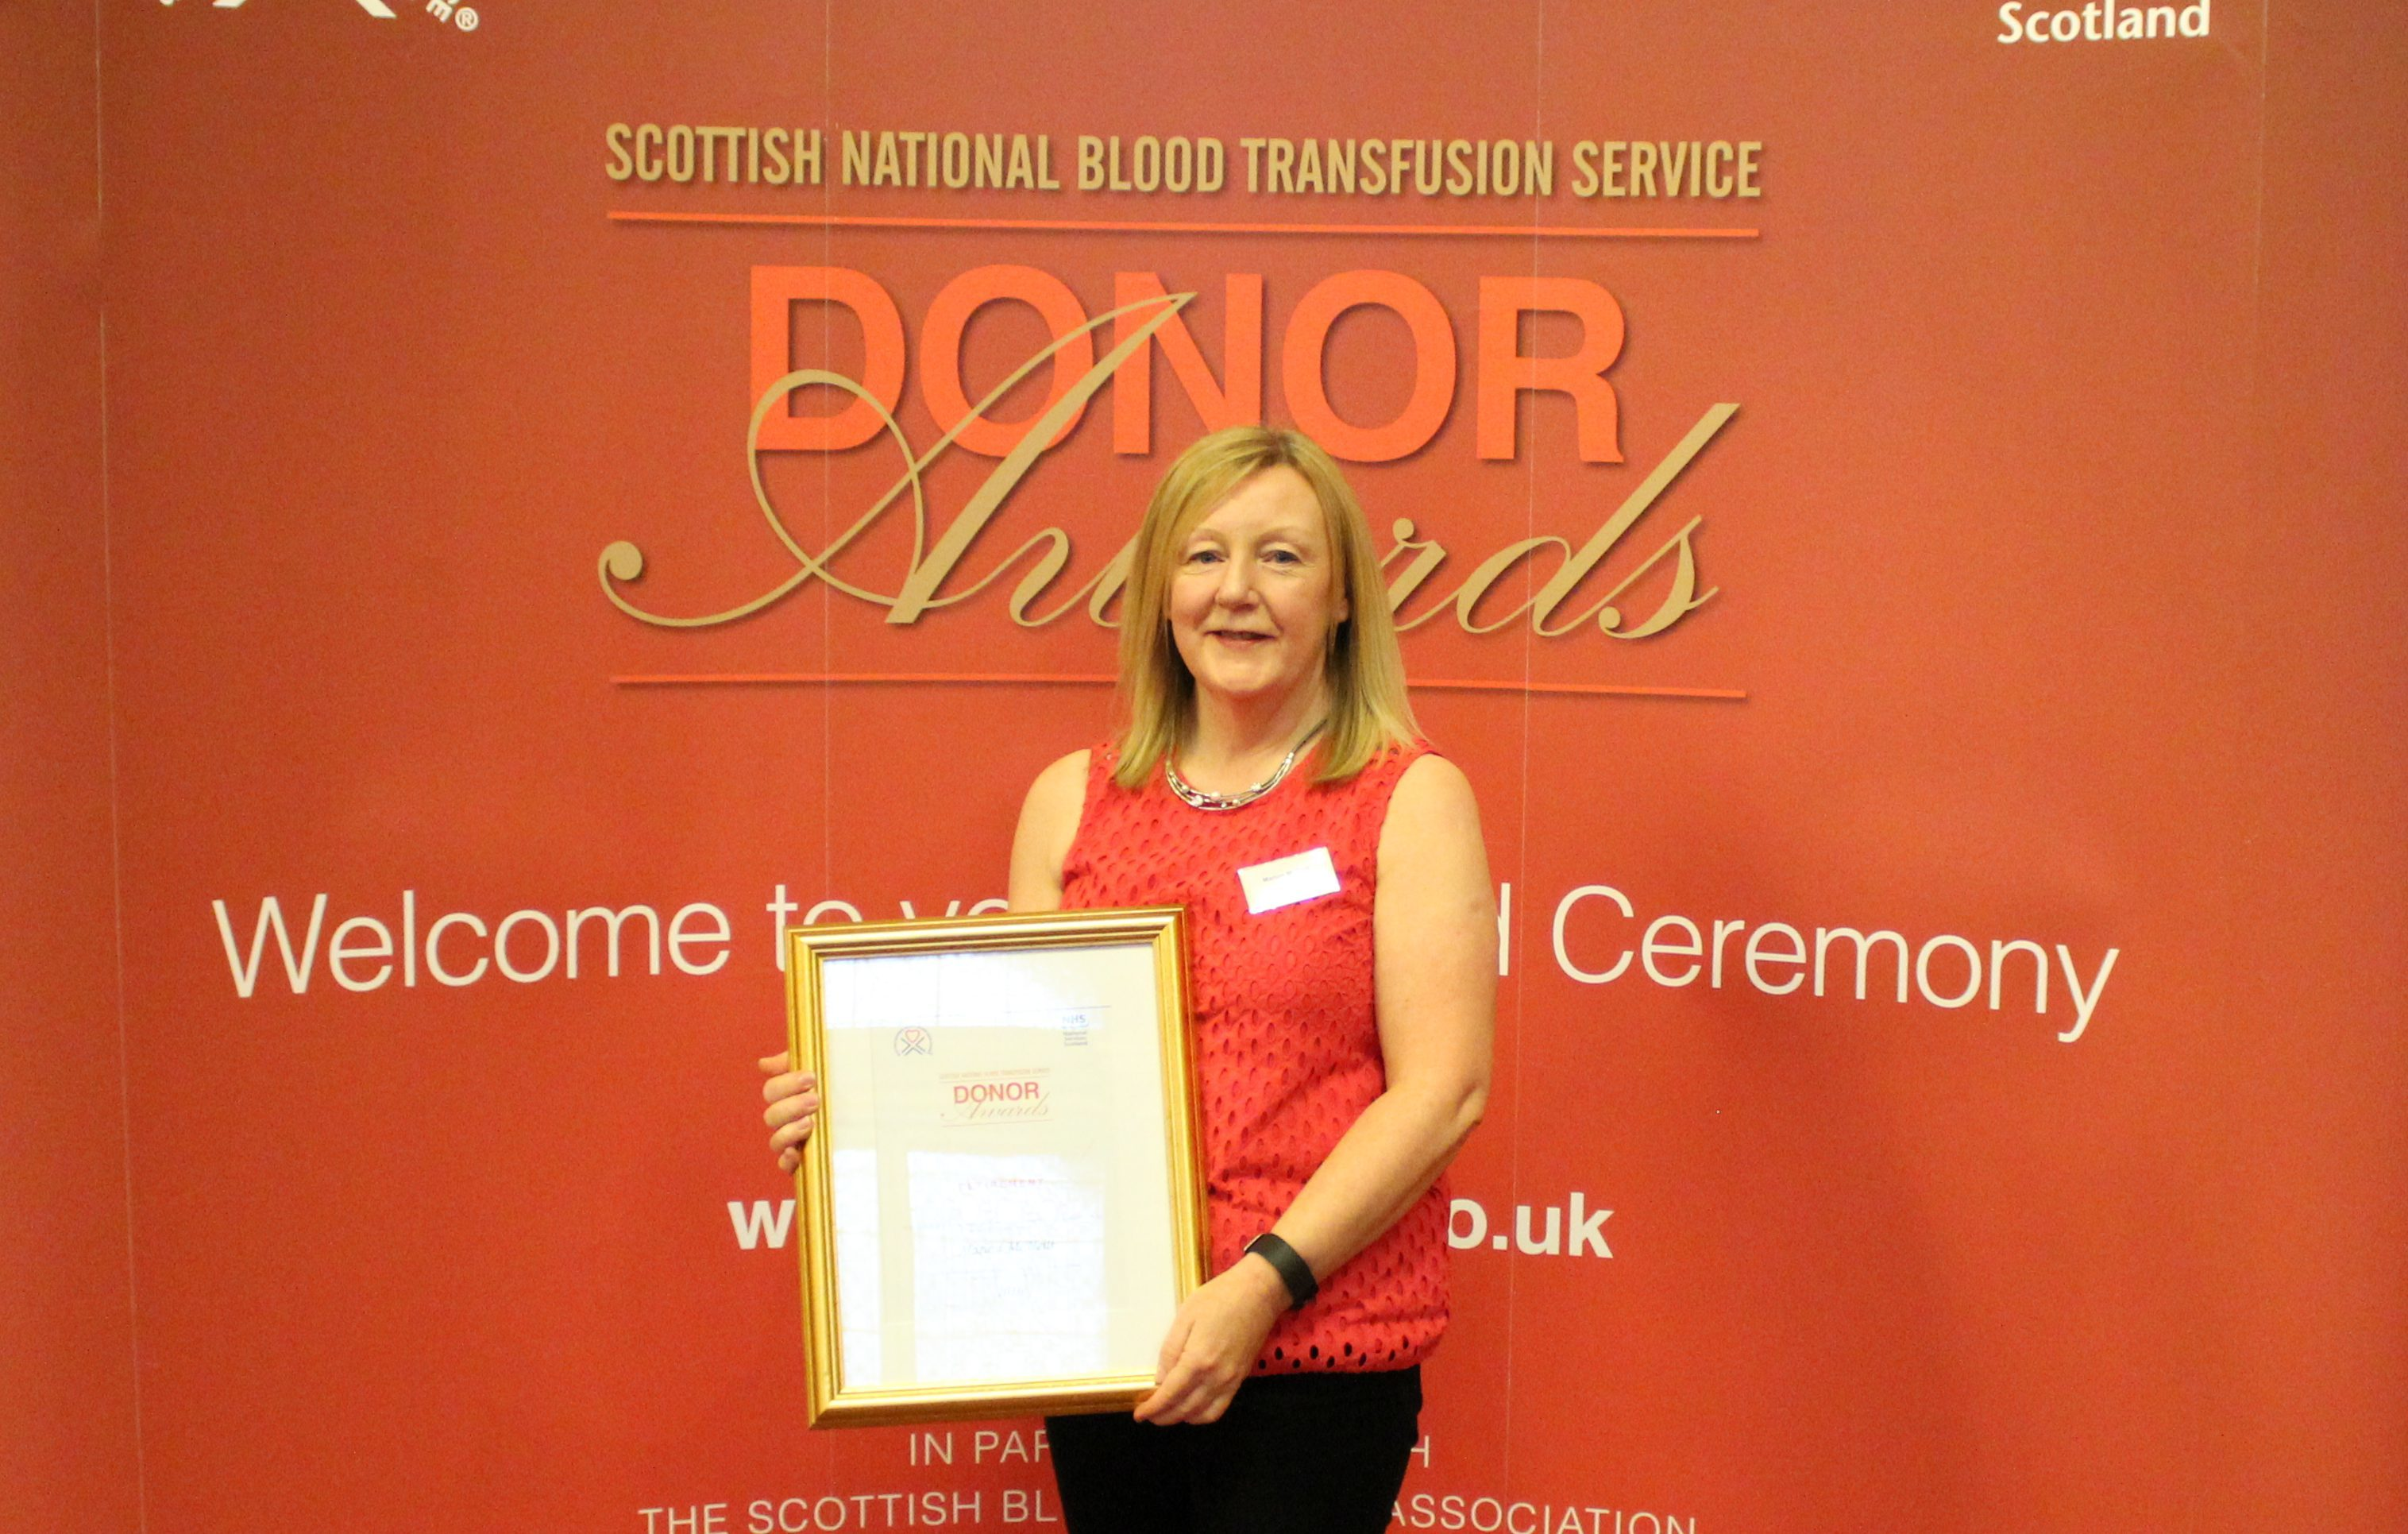 Marion was awarded with her certificate in Glasgow after giving 100 pints of blood